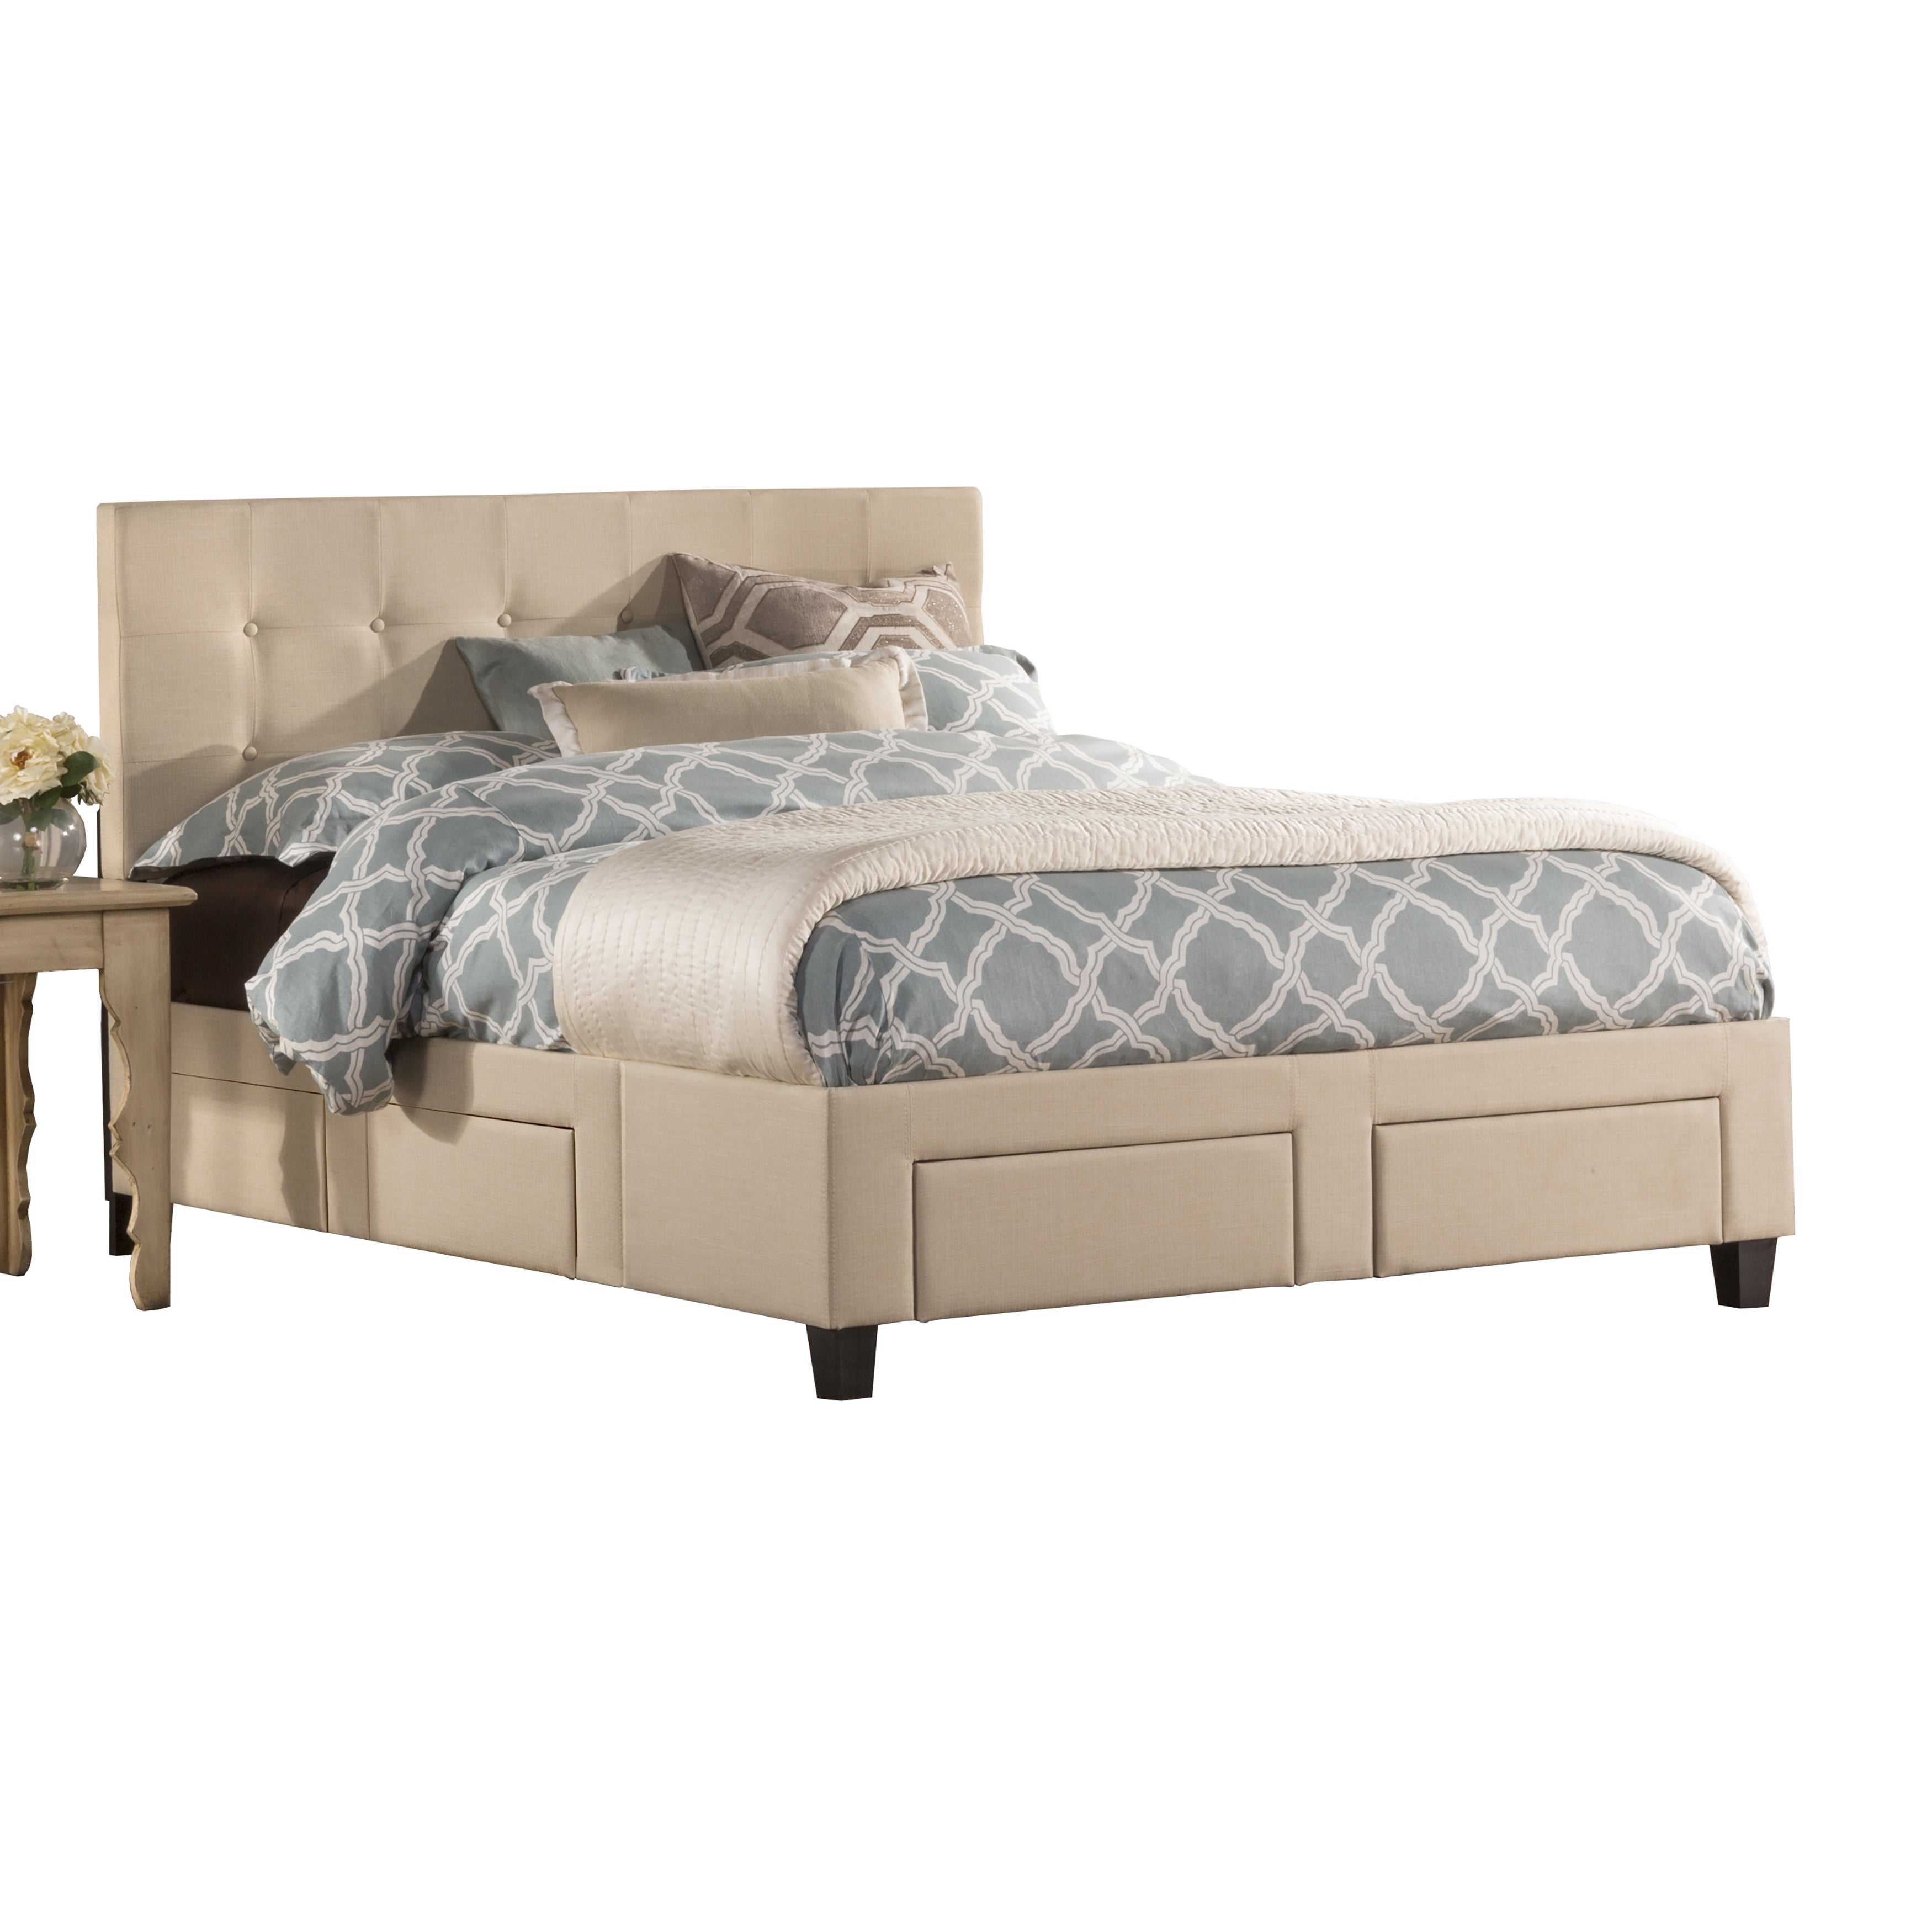 duggan upholstered tufted 6 drawer storage queen king bed frame ebay. Black Bedroom Furniture Sets. Home Design Ideas